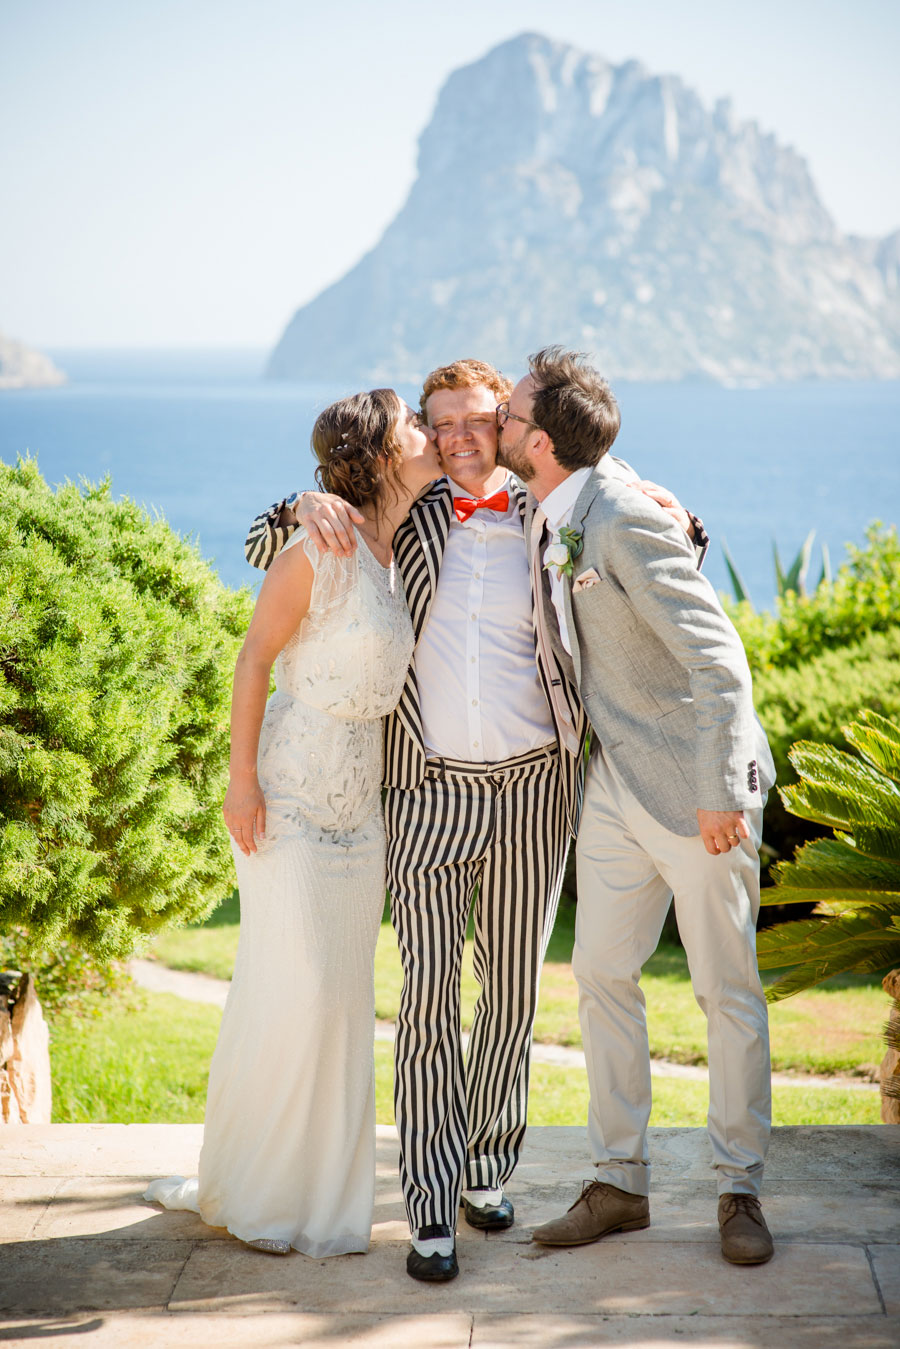 nicola-and-jimmy-es-vedra-ibiza-gypsy-westwood-photography-50